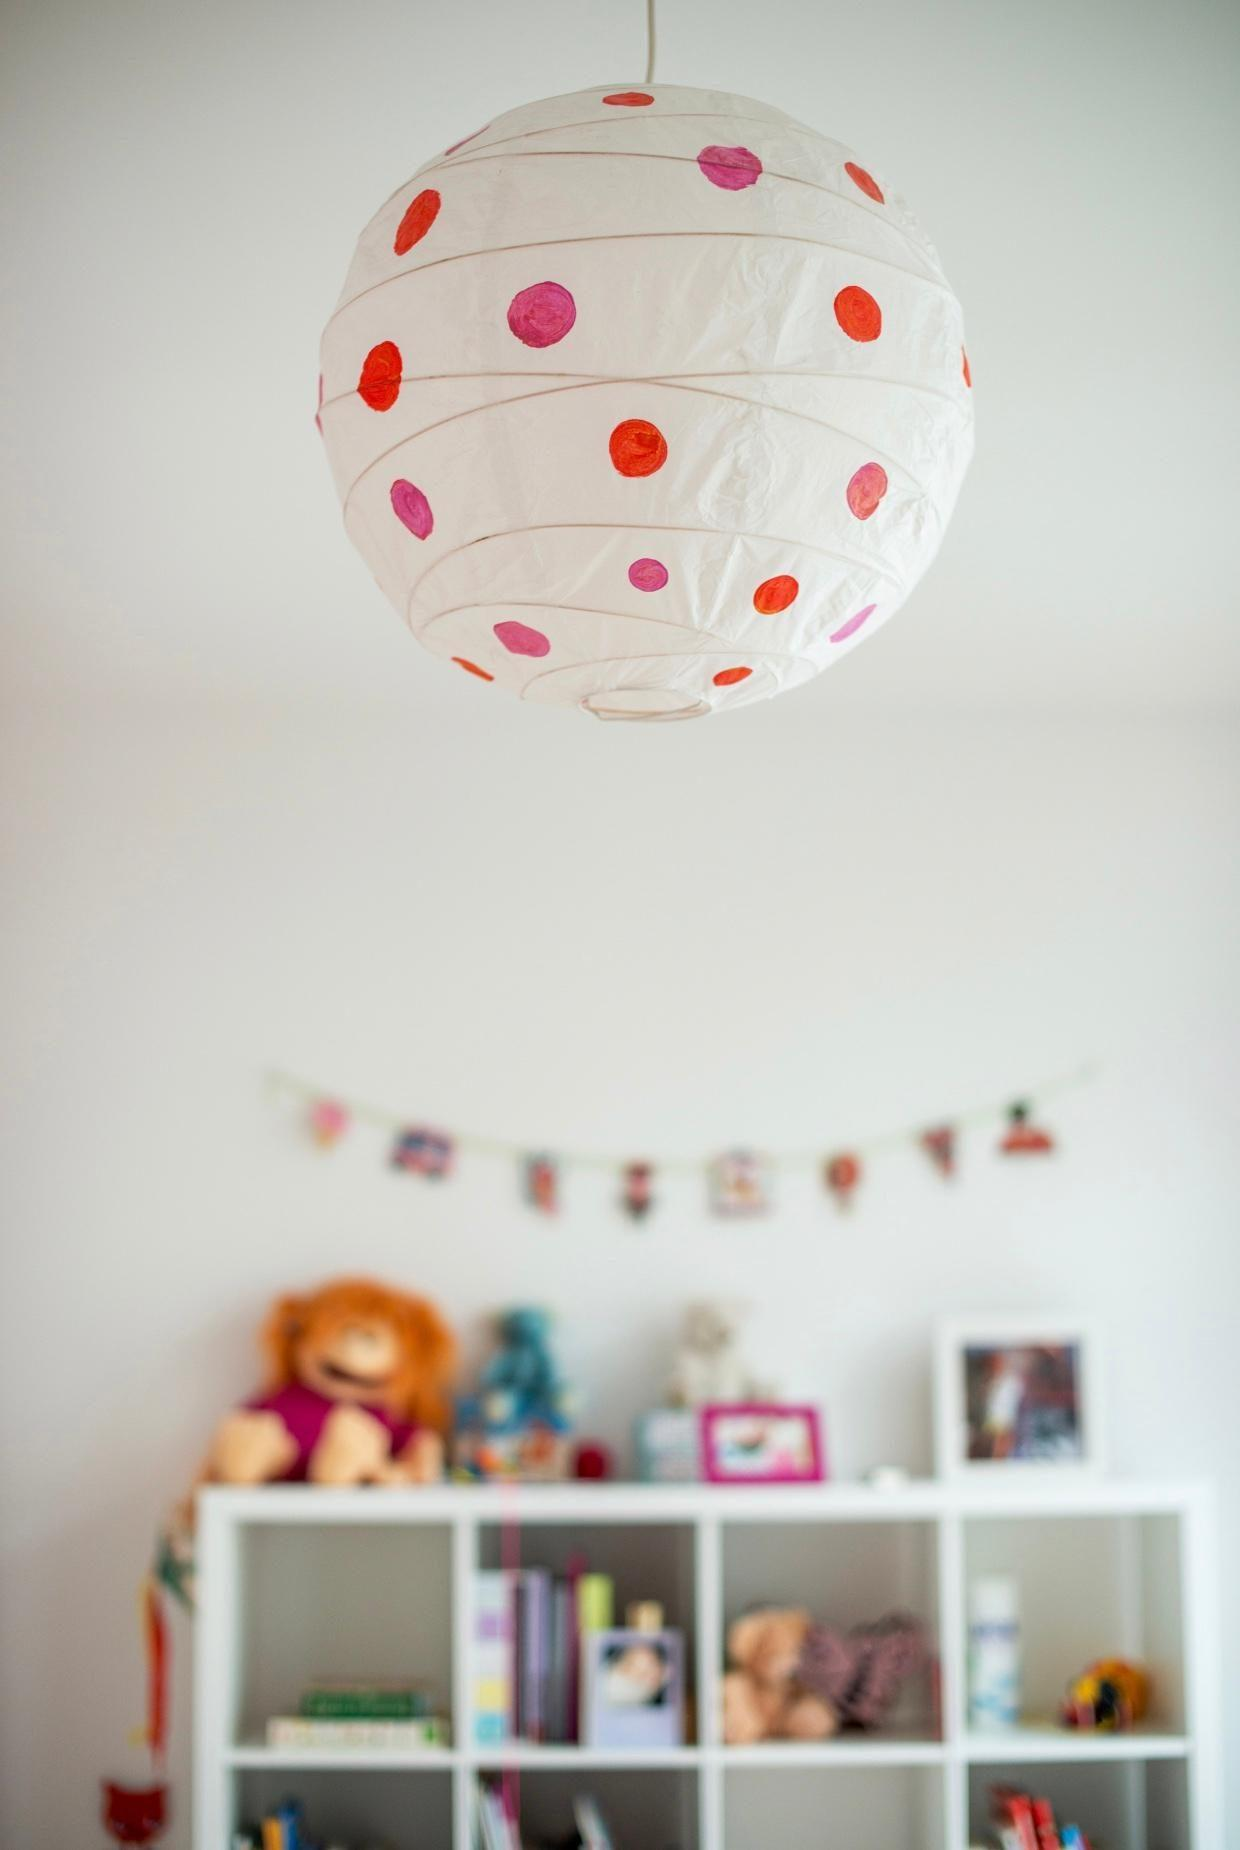 Happy Dots Kinderzimmer Lampe Diy Madchenzimm